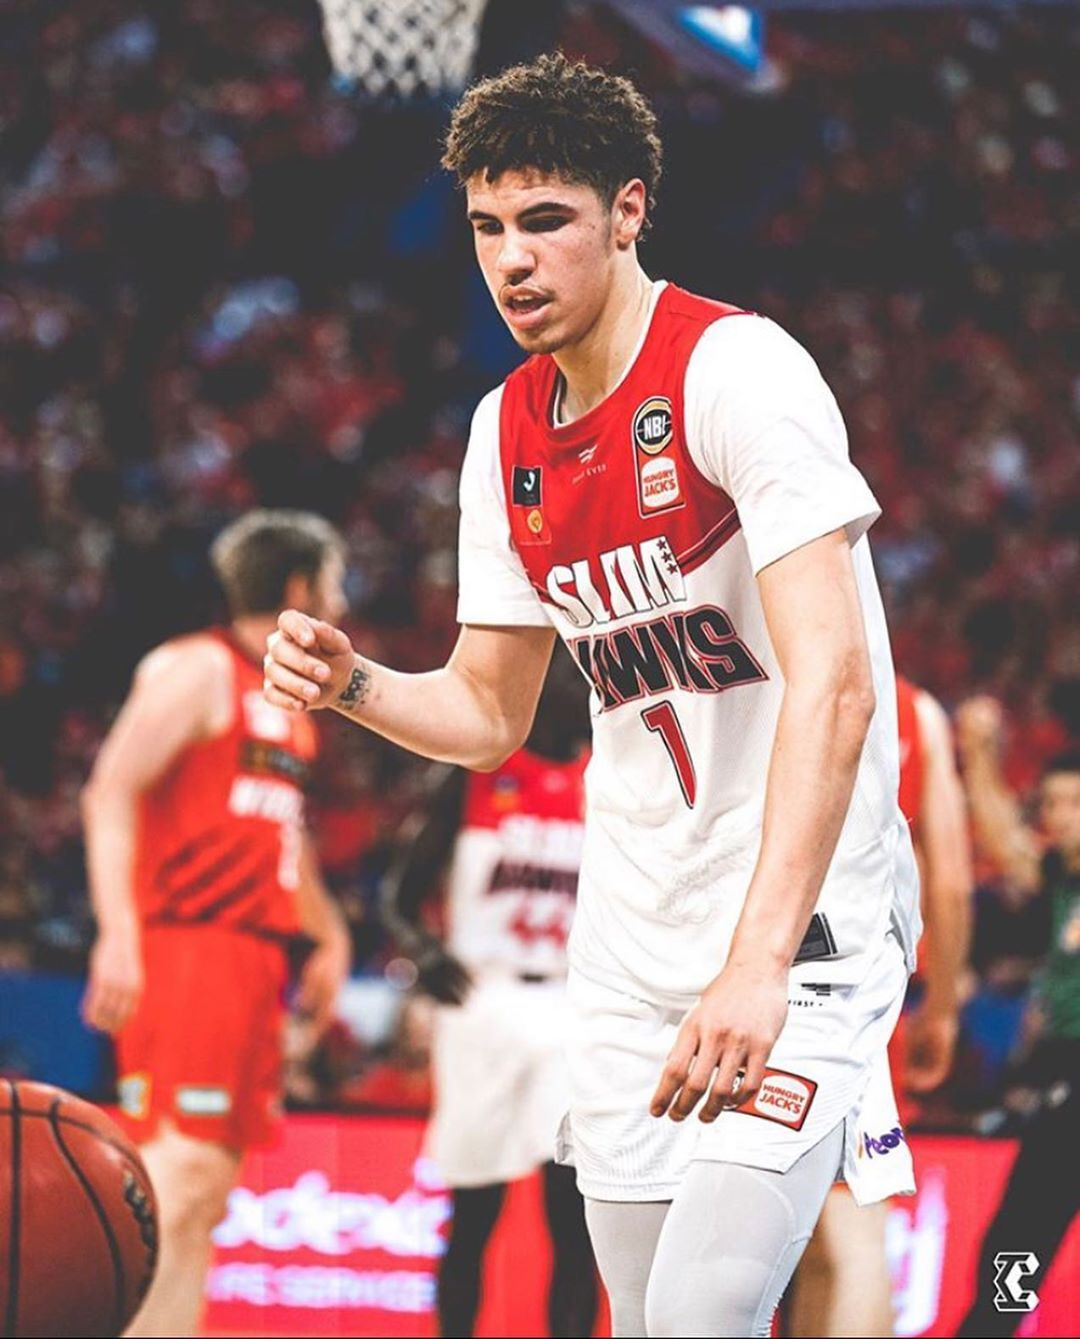 Lamelo Ball Mb1 On Instagram 8 Months Till This Man Gets Drafted Is In The League Follow Melotoowavy For More C In 2020 Lamelo Ball Basketball Players Ball